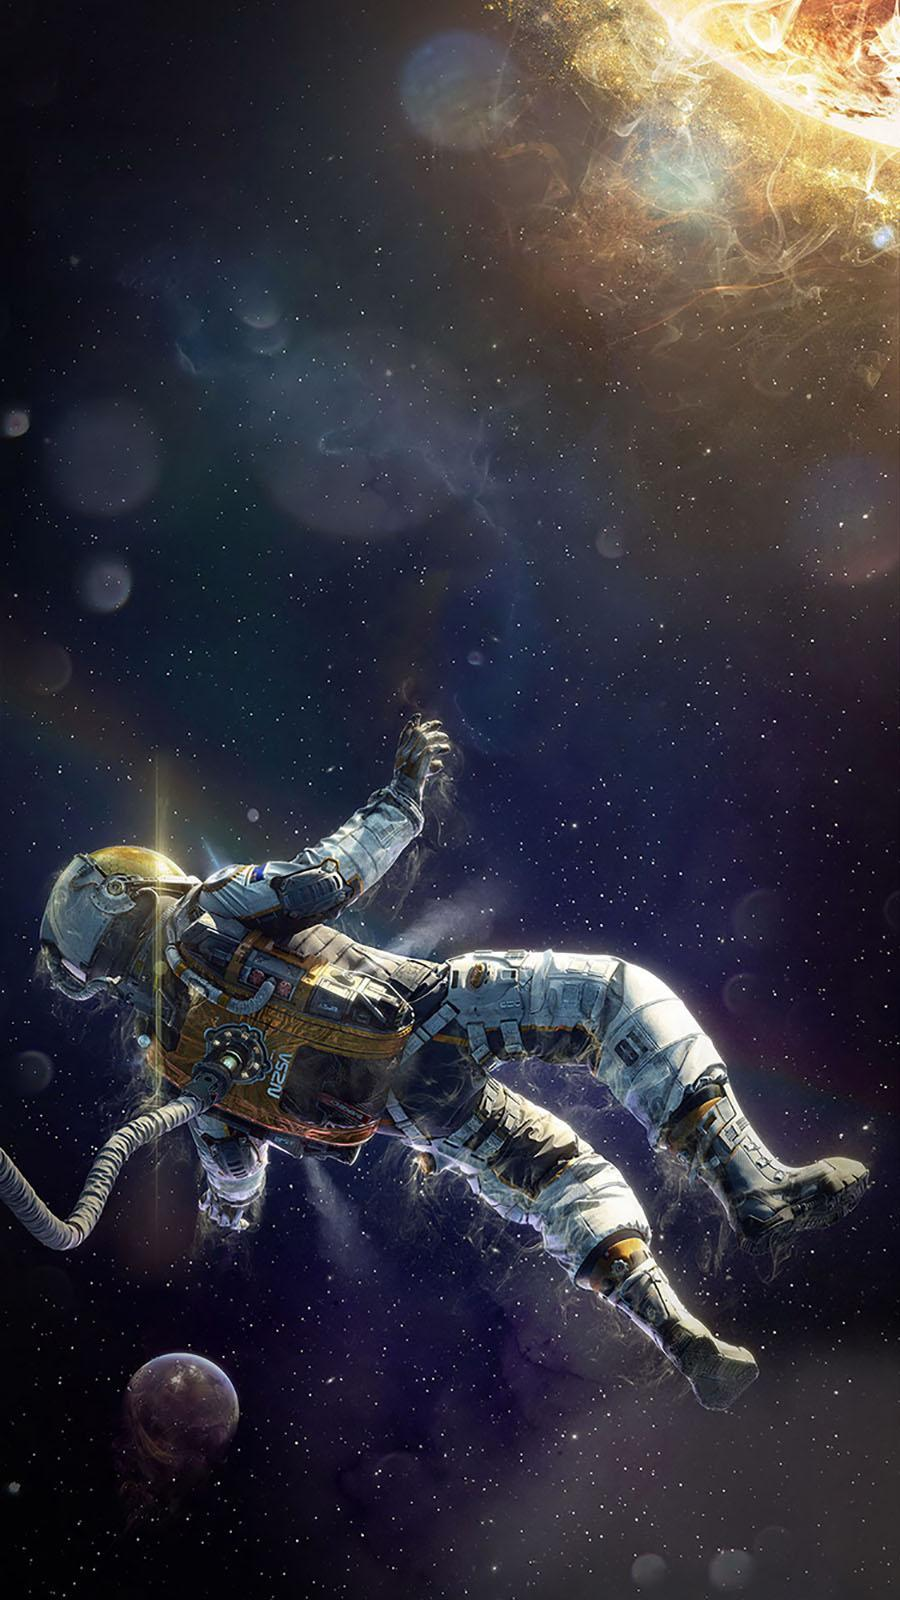 Space Wallpaper 4k Ultra Hd For Android Apk Download